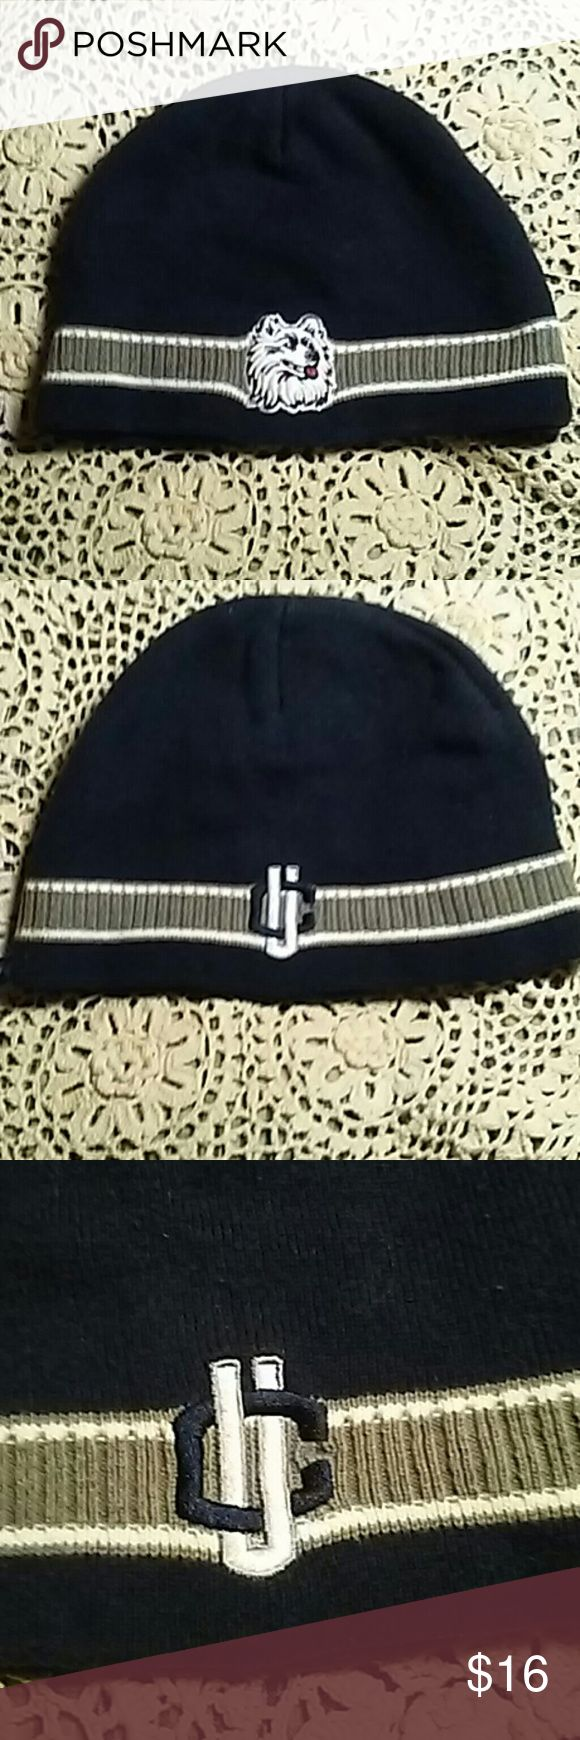 🏀UCONN HUSKIES BEANIE!!🏀 🏀UCONN HUSKIES BEANIE~ DARK BLUE~GRAY AND WHITE STRIPE AROUND EDGE WITH THE UCONN HUSKIE DOG LOGO ON THE FRONT AND THE LOGO FOR UCONN~( U C~) ON BACK. YOU CAN WEAR IT WITH EITHER LOGO IN FRONT!🏀🏀🏀🏀 UCONN HUSKIES Accessories Hats